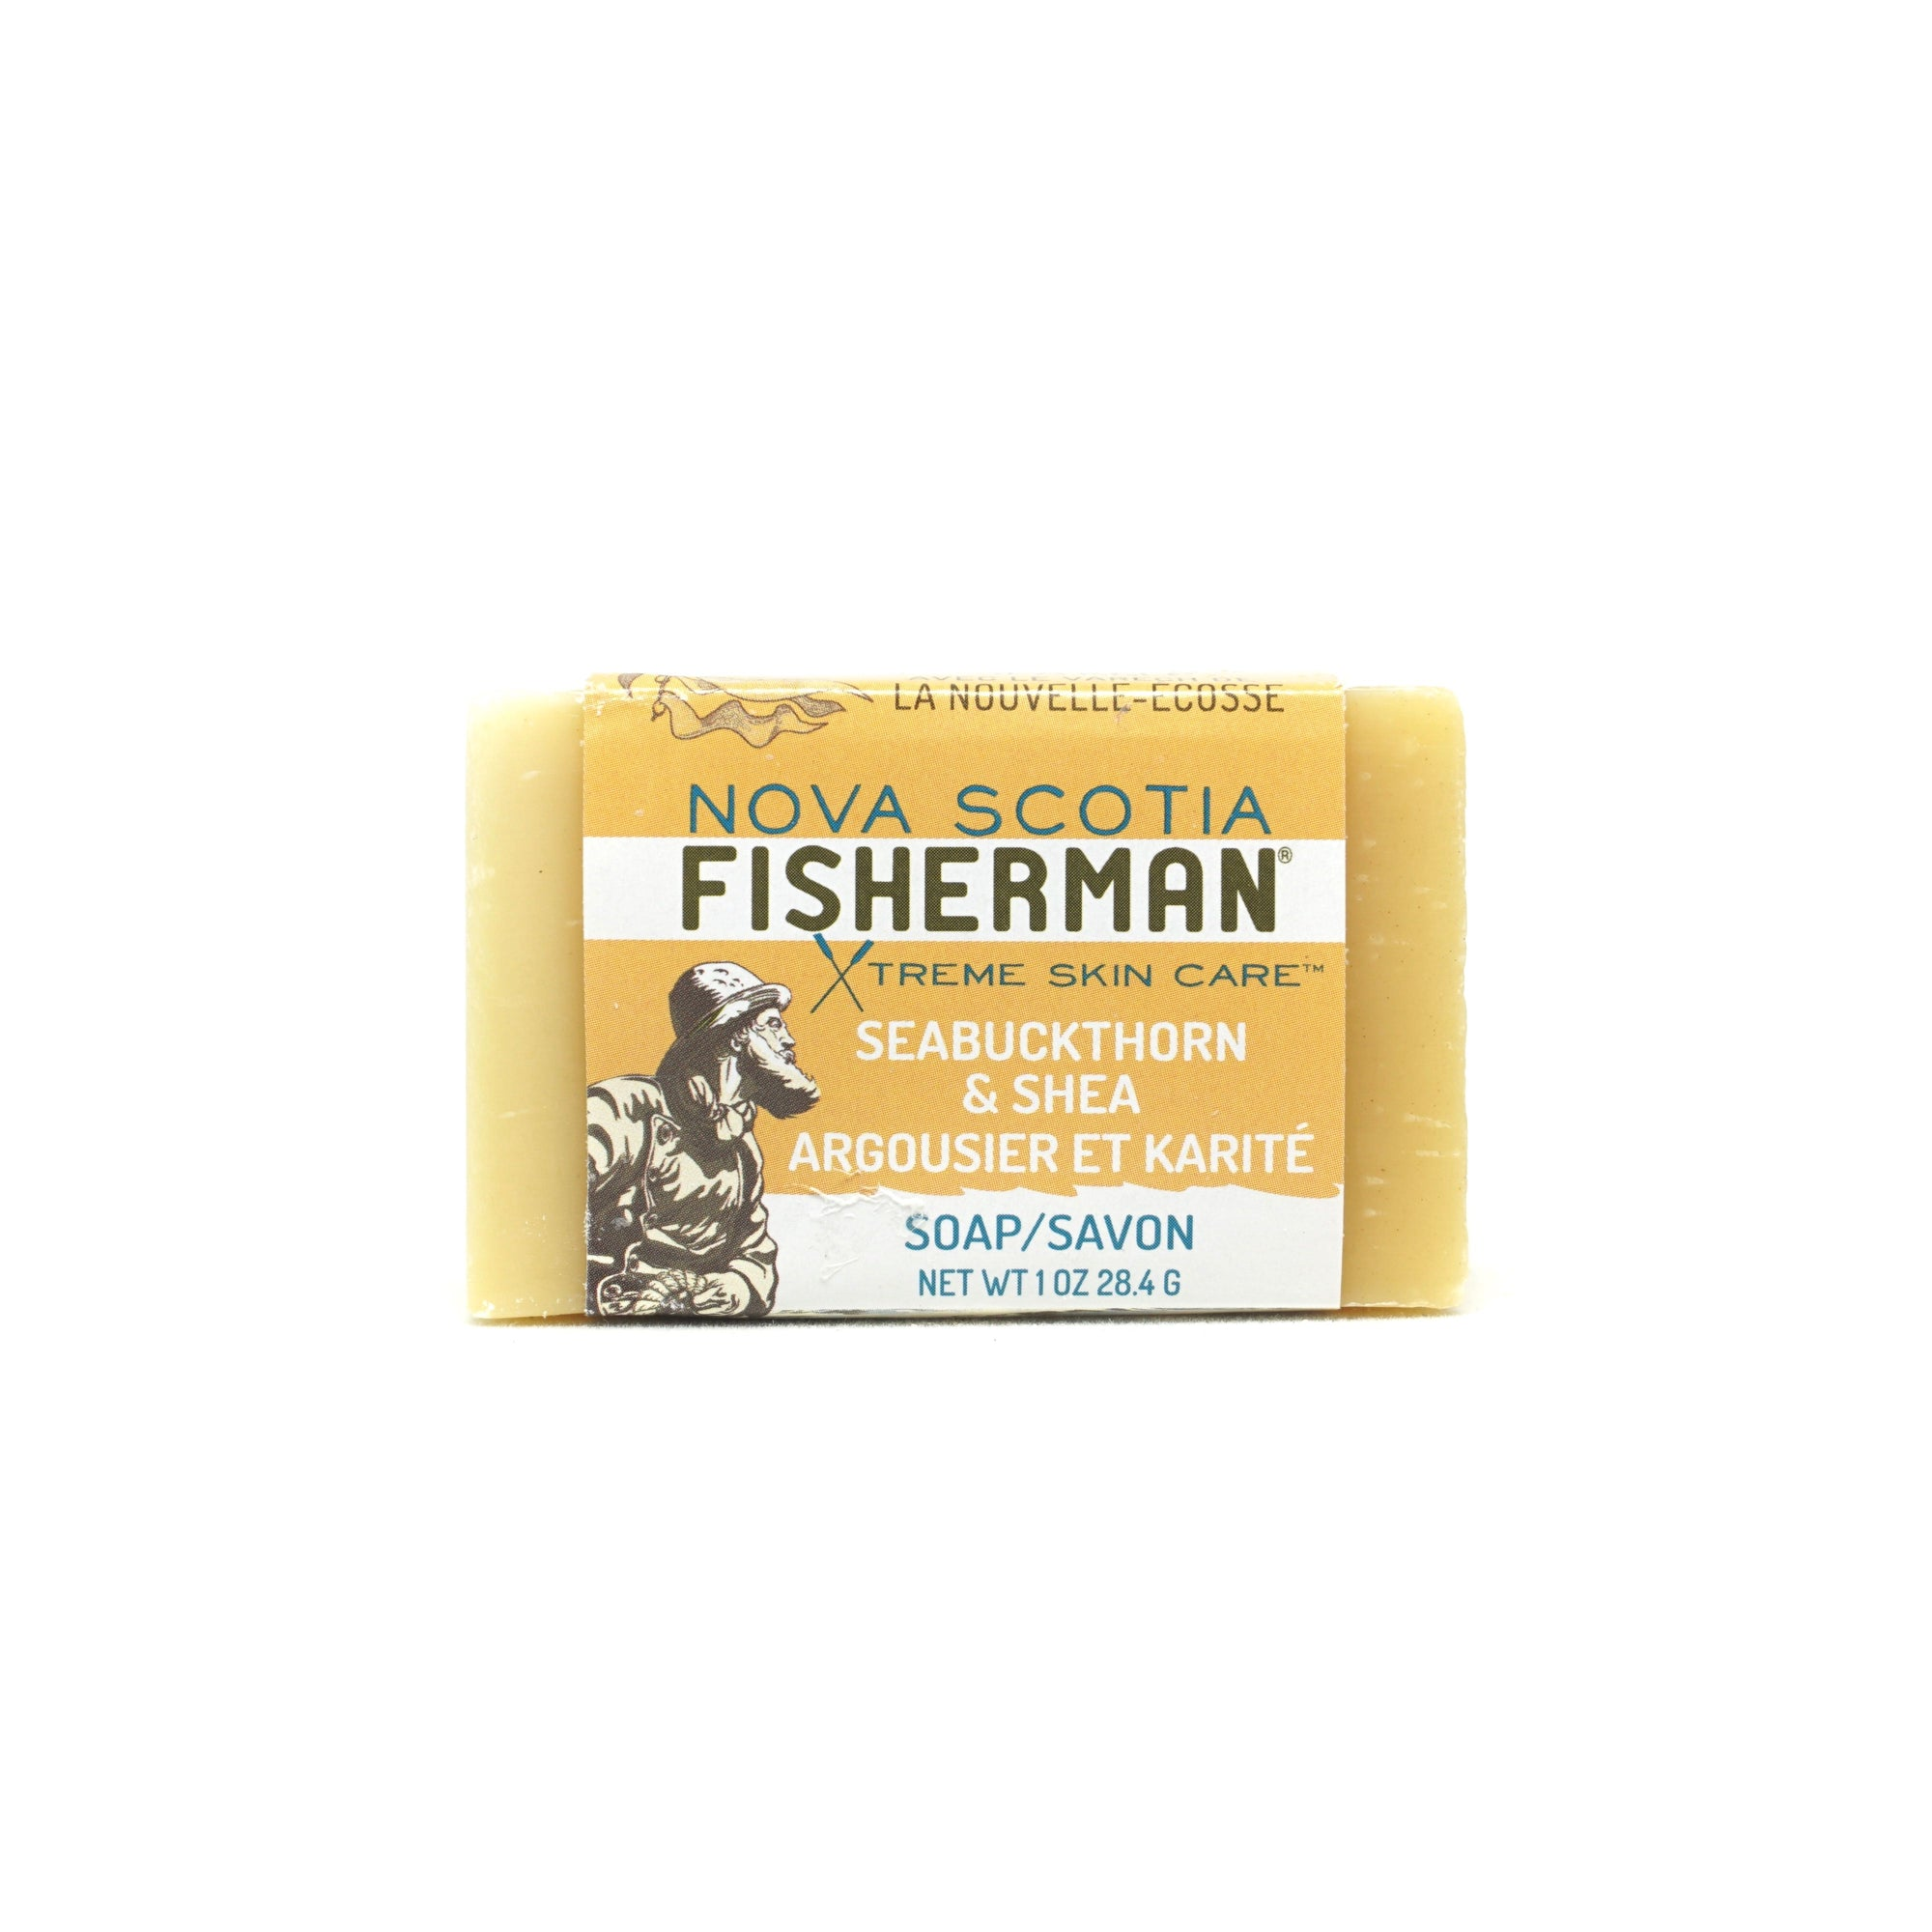 Hand & Face Soap Bar - Seabuckthorn and Shea - Nova Scotia Fisherman Sea Kelp Skincare